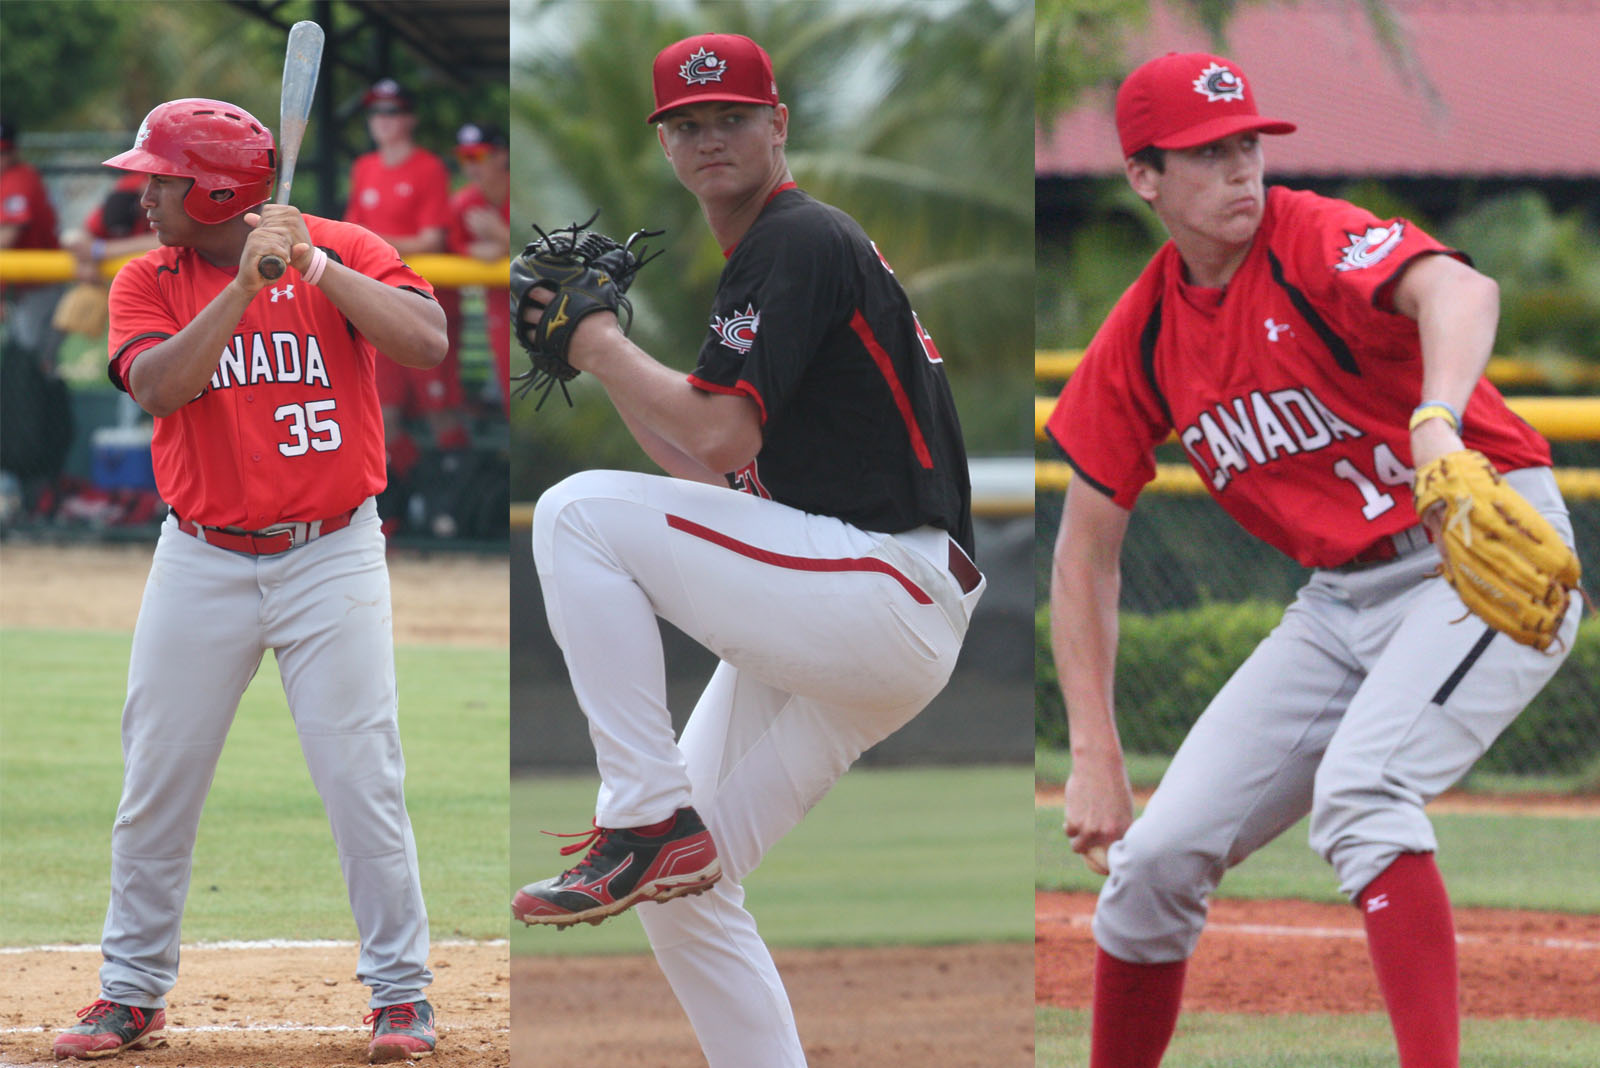 Naylor, Quantrill, Soroka named to Futures Game